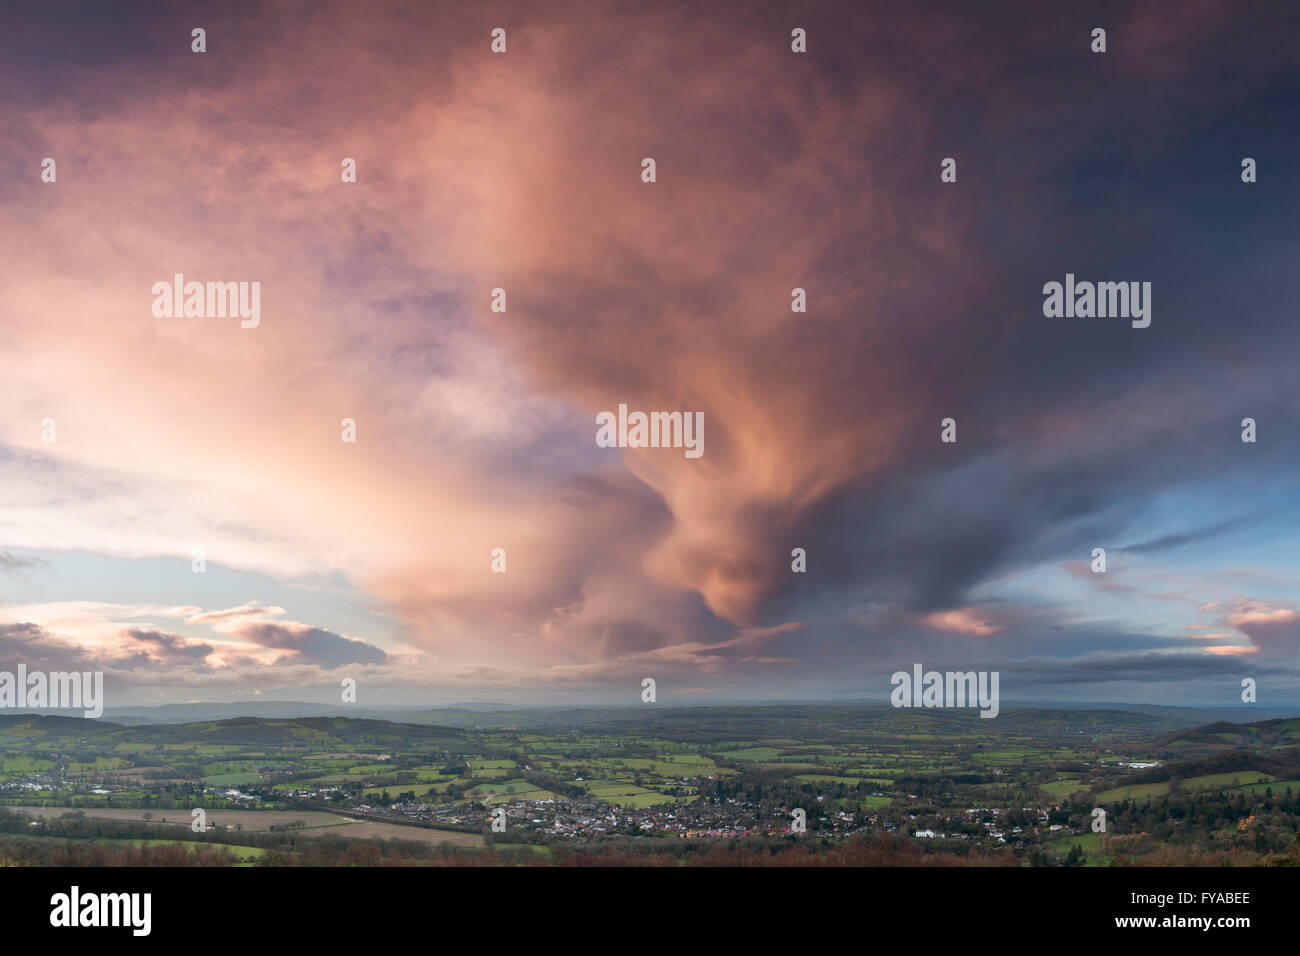 A storm cloud at sunset is being lit up by the setting sun over Colwall, Herefordshire, England. - Stock Image